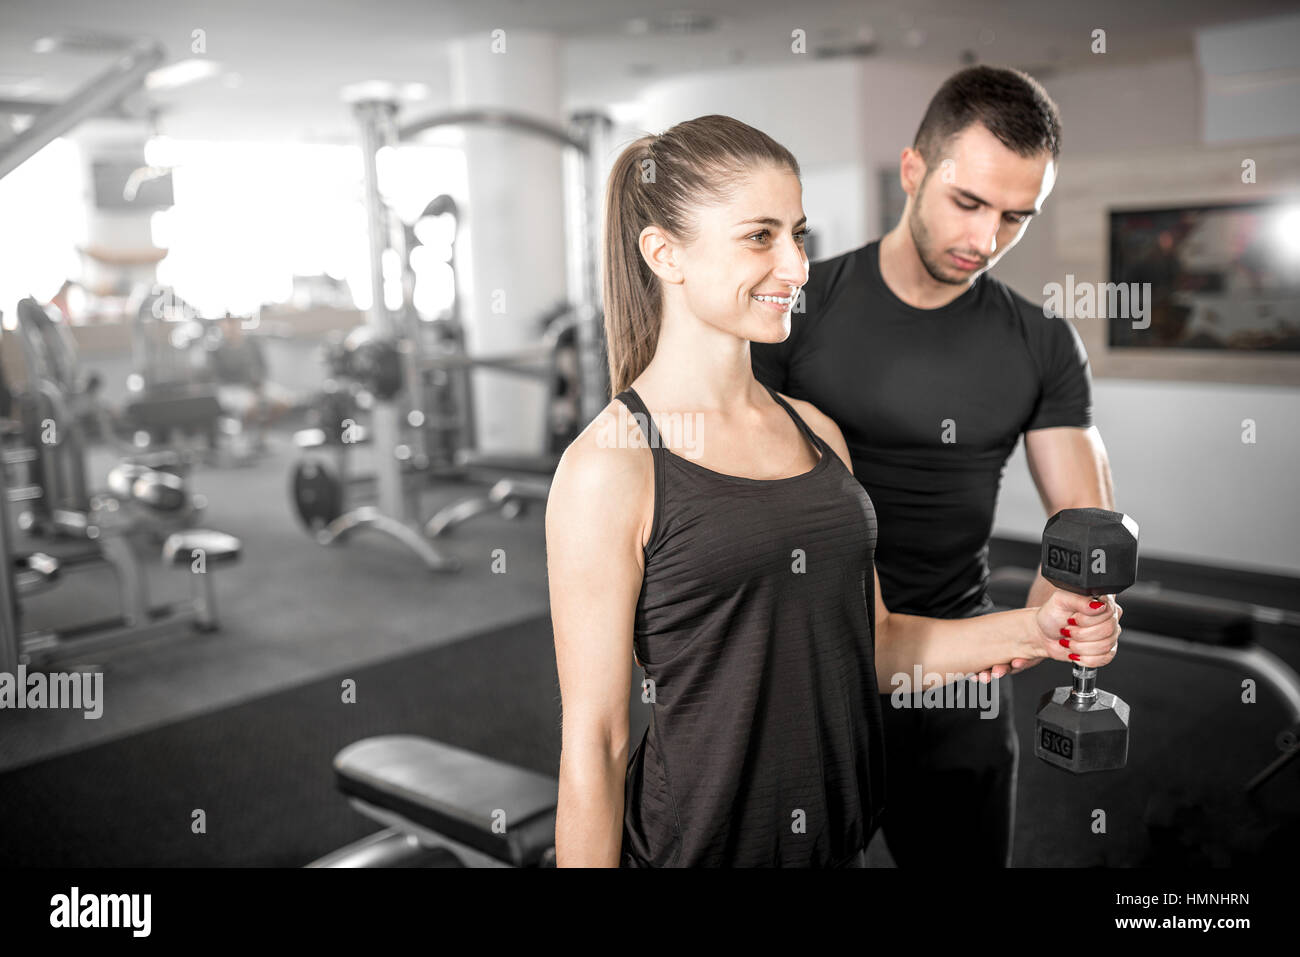 Young adult woman working out in gym, faire des biceps avec l'aide de son entraîneur personnel. Photo Stock